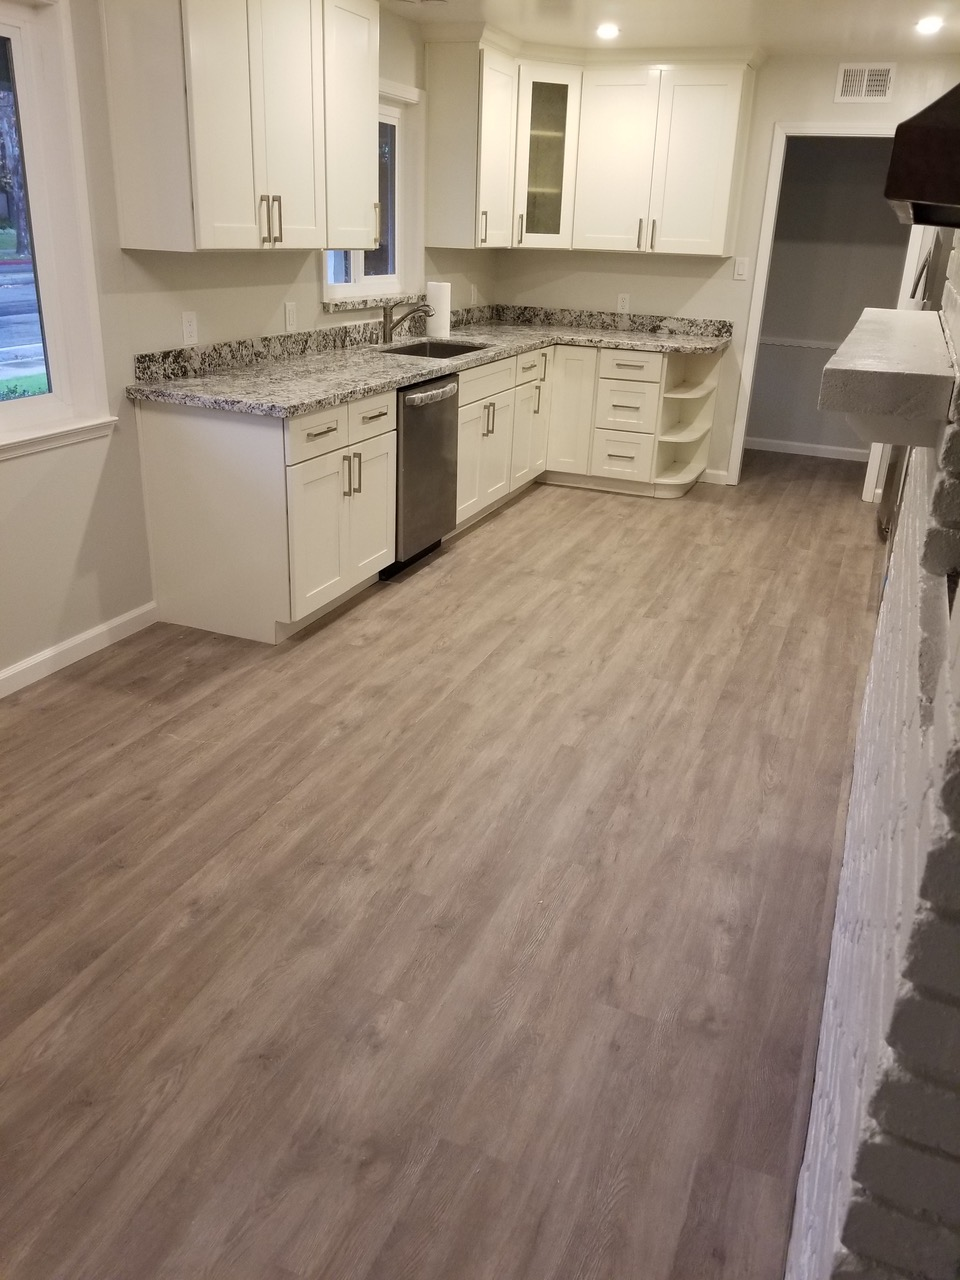 Sales & Wood Flooring Installation: Waterproof luxury vinyl tile                                                                       (LVT) installed  in Mountain View  kitchen dinette, 285 square feet.